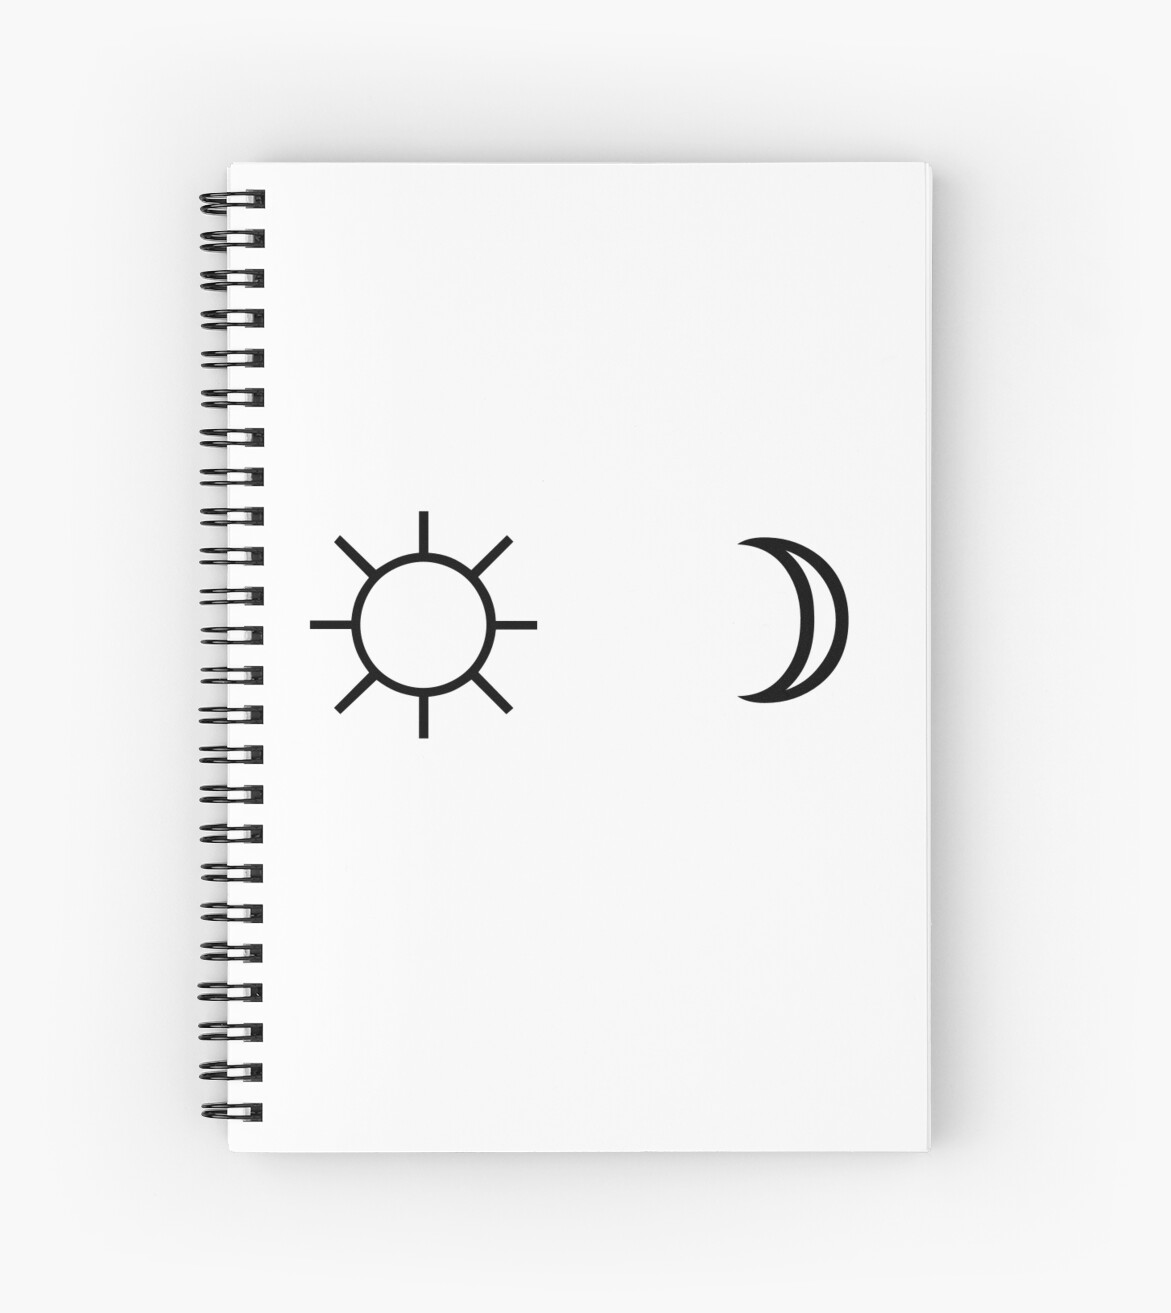 Sun and moon minimalist aesthetic black and white tumblr design spiral notebook